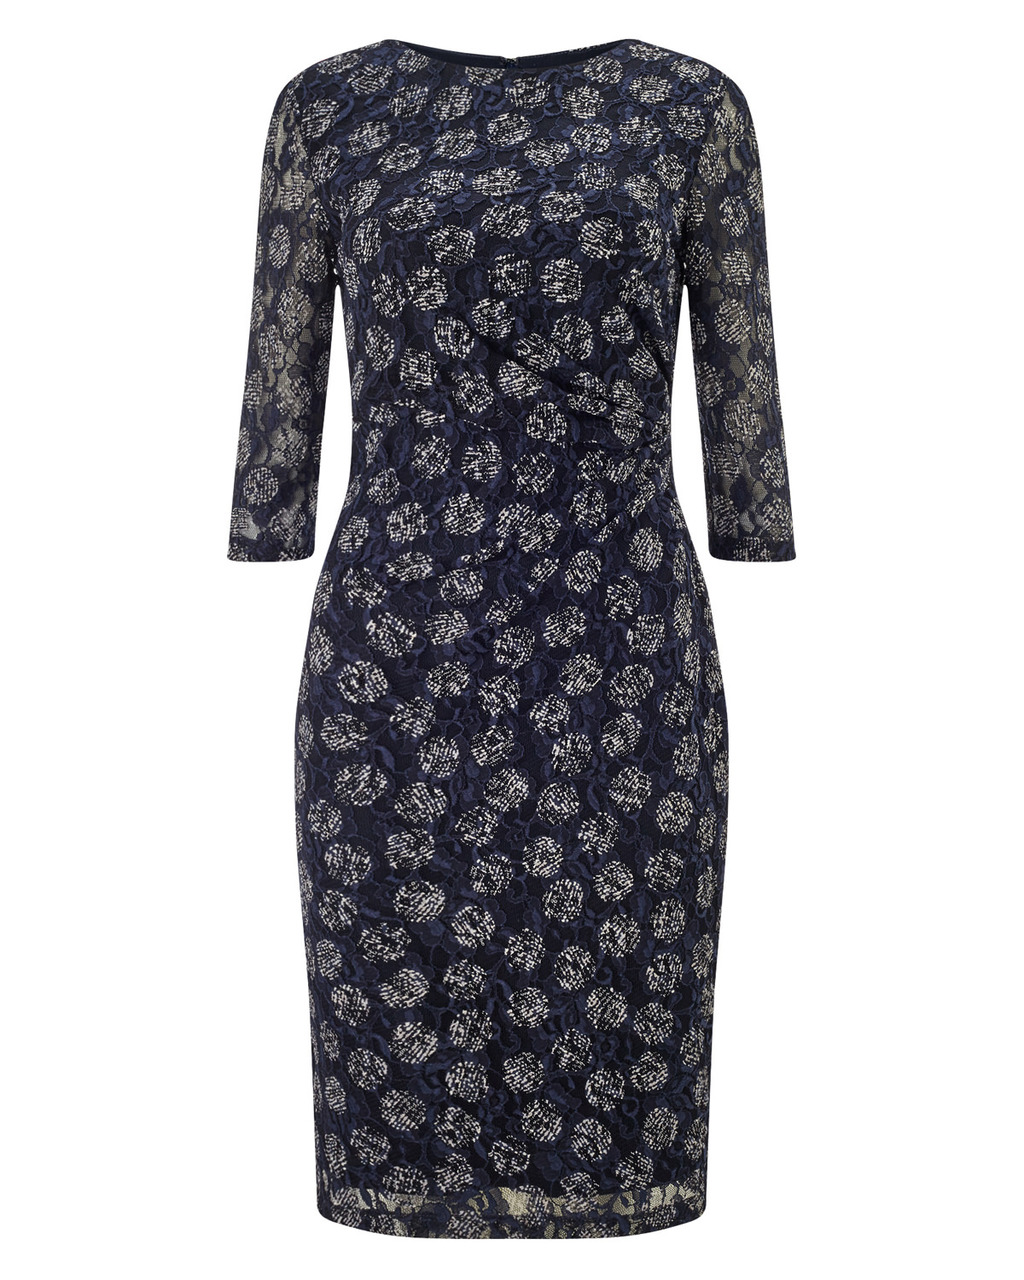 Textured Lace Spot Dress - style: shift; secondary colour: lilac; predominant colour: navy; length: on the knee; fit: body skimming; fibres: polyester/polyamide - stretch; occasions: occasion; neckline: crew; sleeve length: 3/4 length; sleeve style: standard; texture group: lace; pattern type: fabric; pattern size: standard; pattern: patterned/print; season: a/w 2015